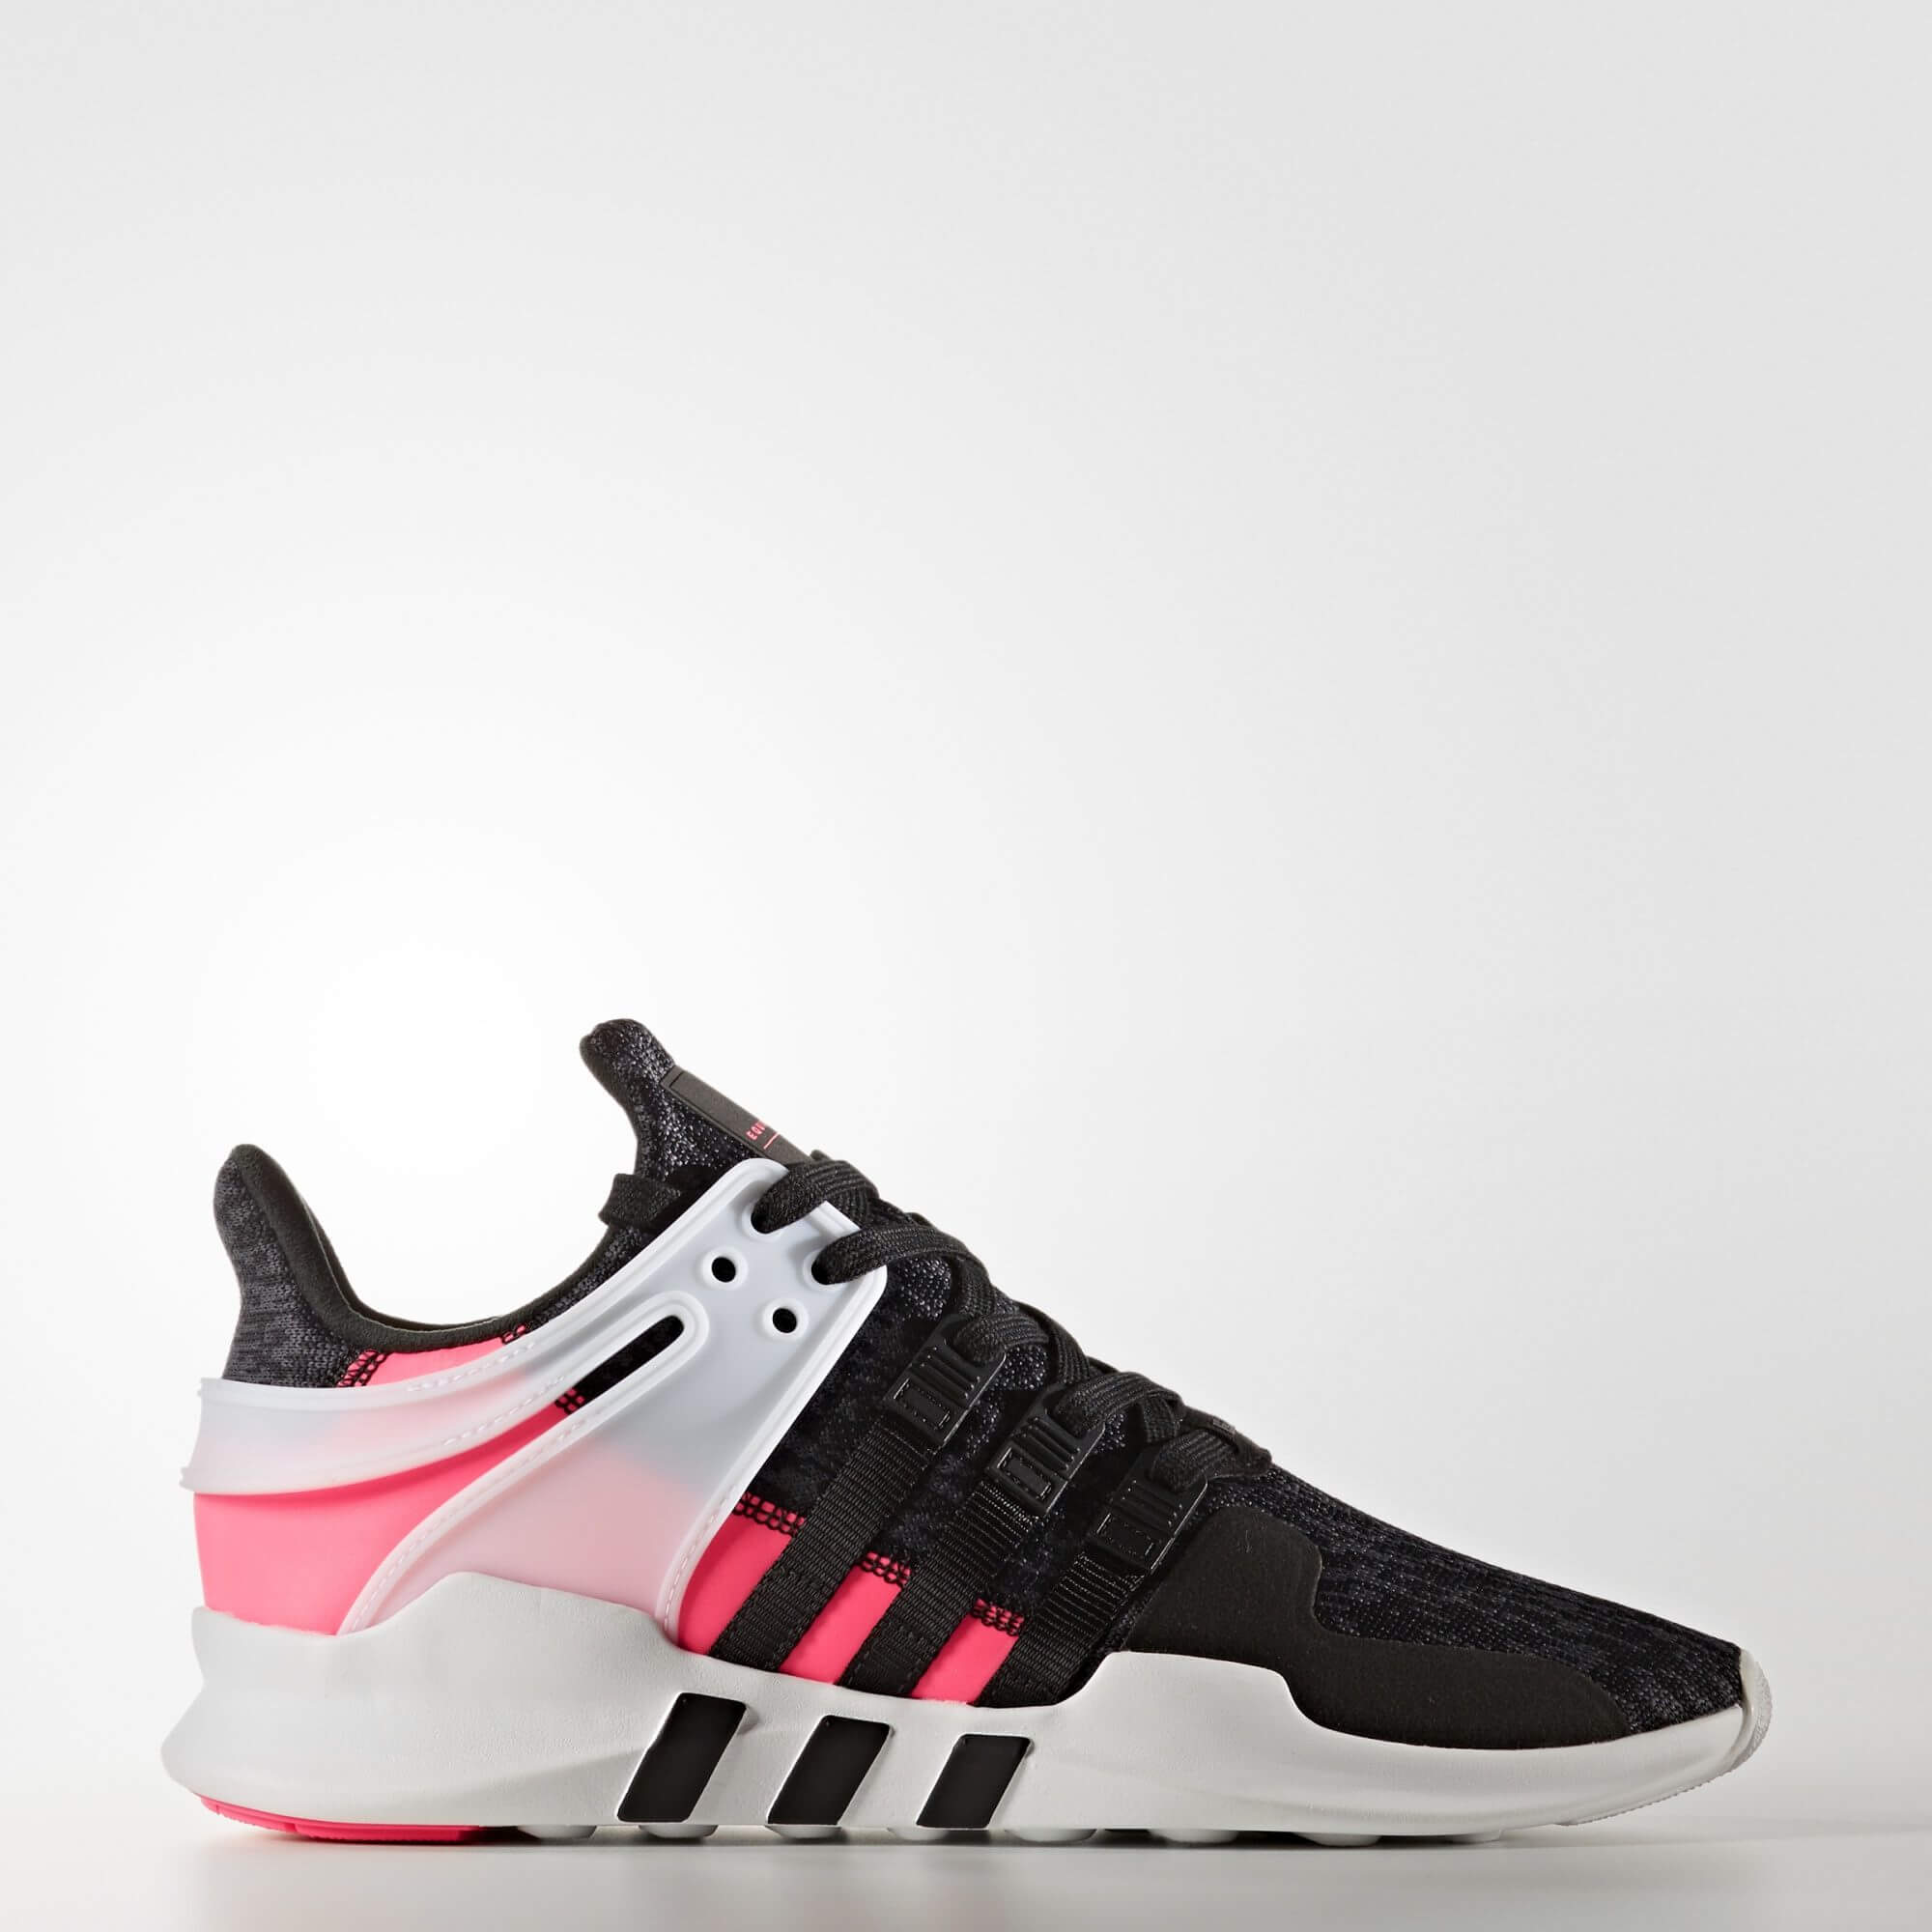 new products f38a9 02be1 Adidas EQT Support ADV Color Core Black / Core Black (BB1302 ...